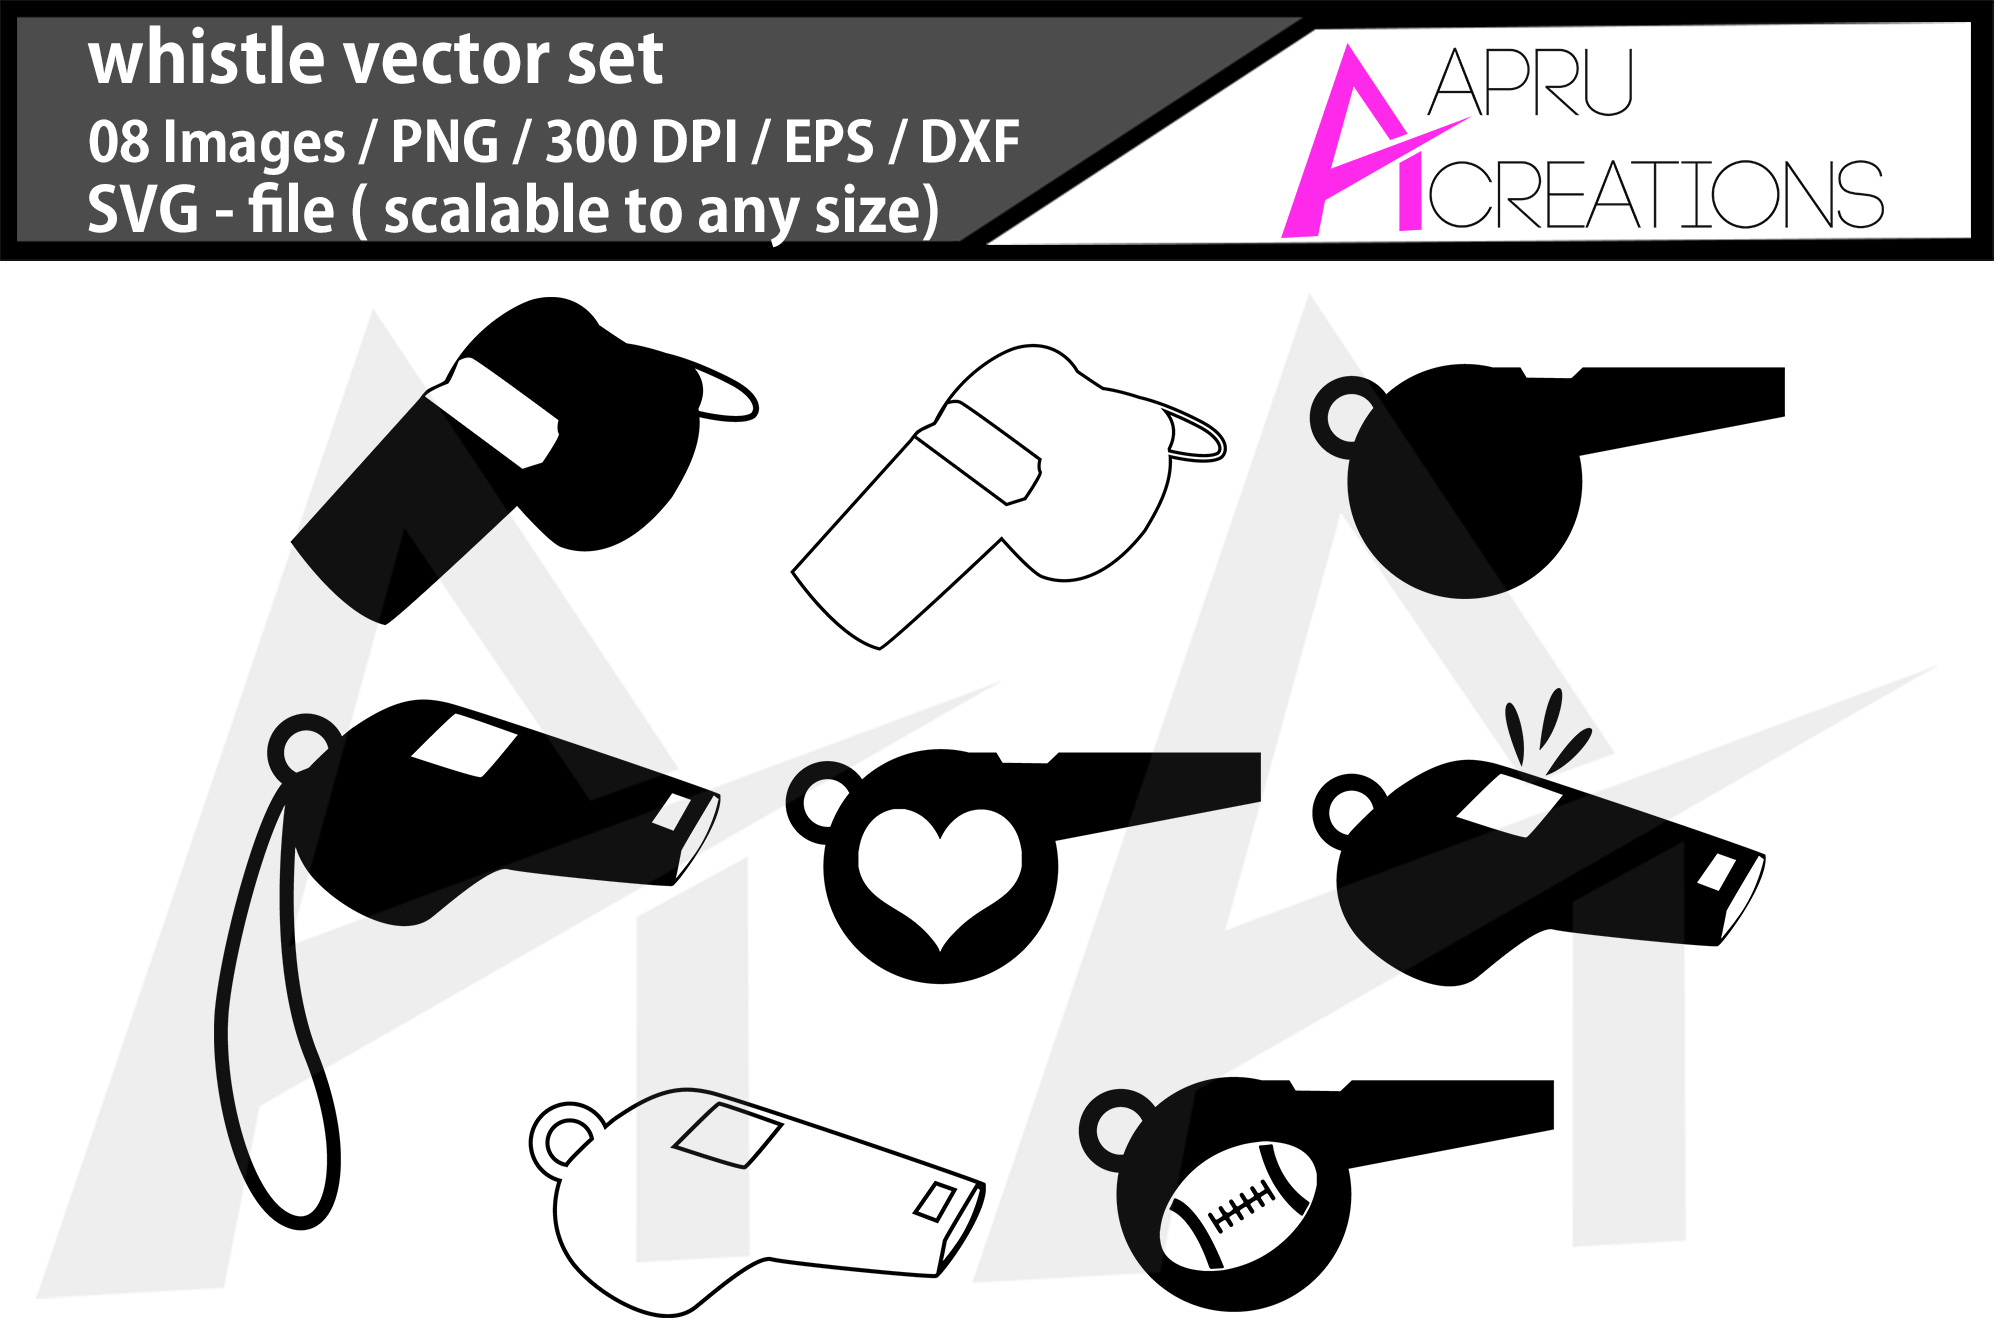 Download Free Whistle Silhouette Whistle Graphic By Aparnastjp Creative Fabrica for Cricut Explore, Silhouette and other cutting machines.